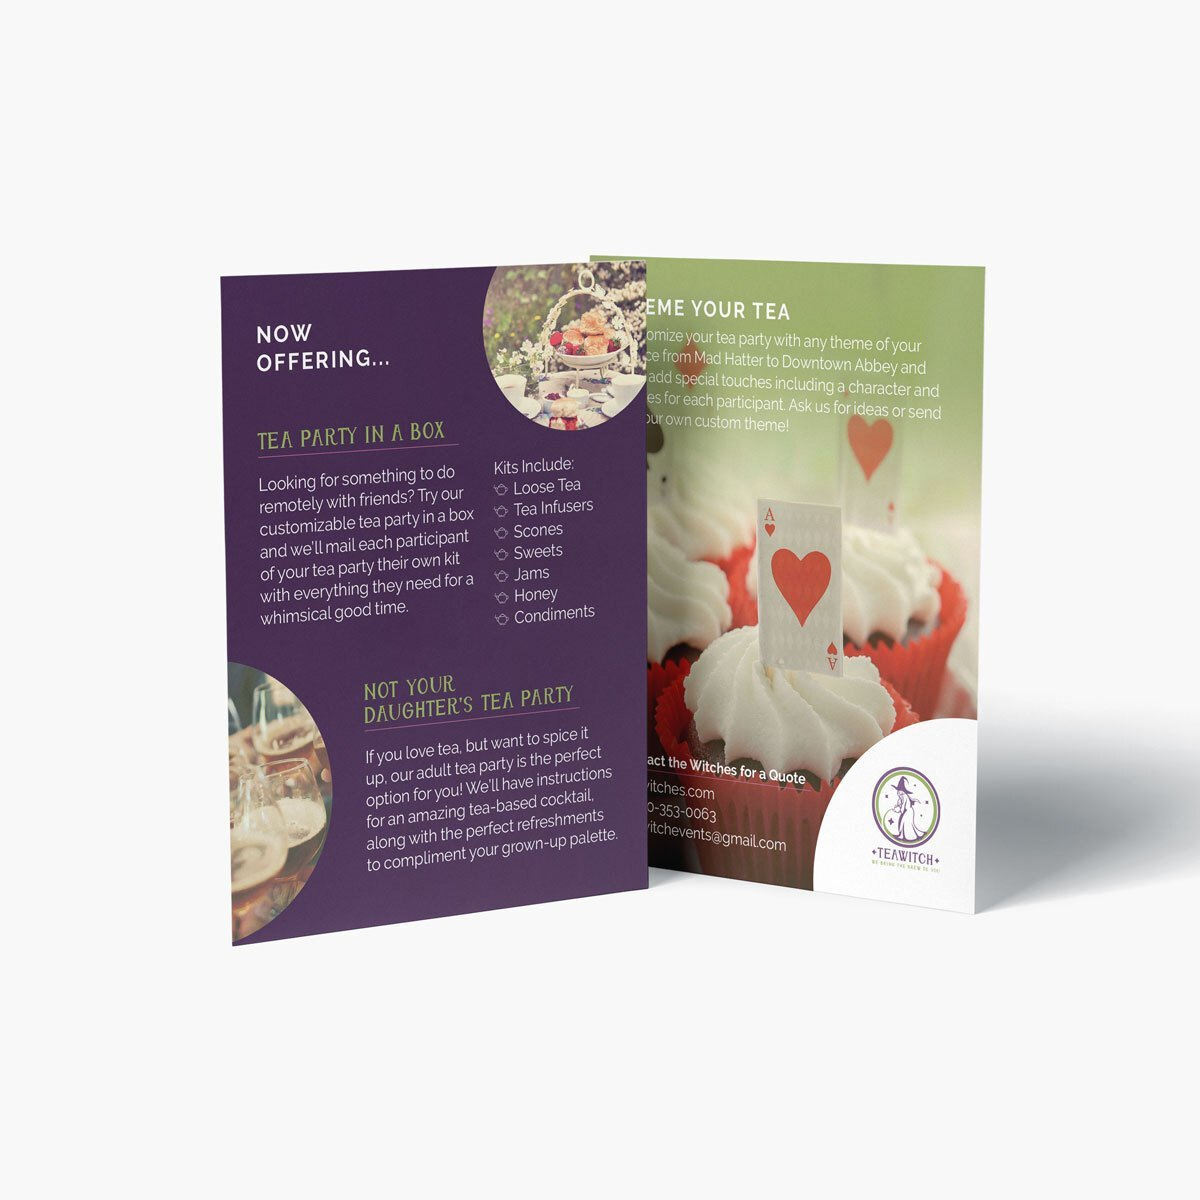 Tea party catering brochure design from BrandSwan, a Delaware branding agency